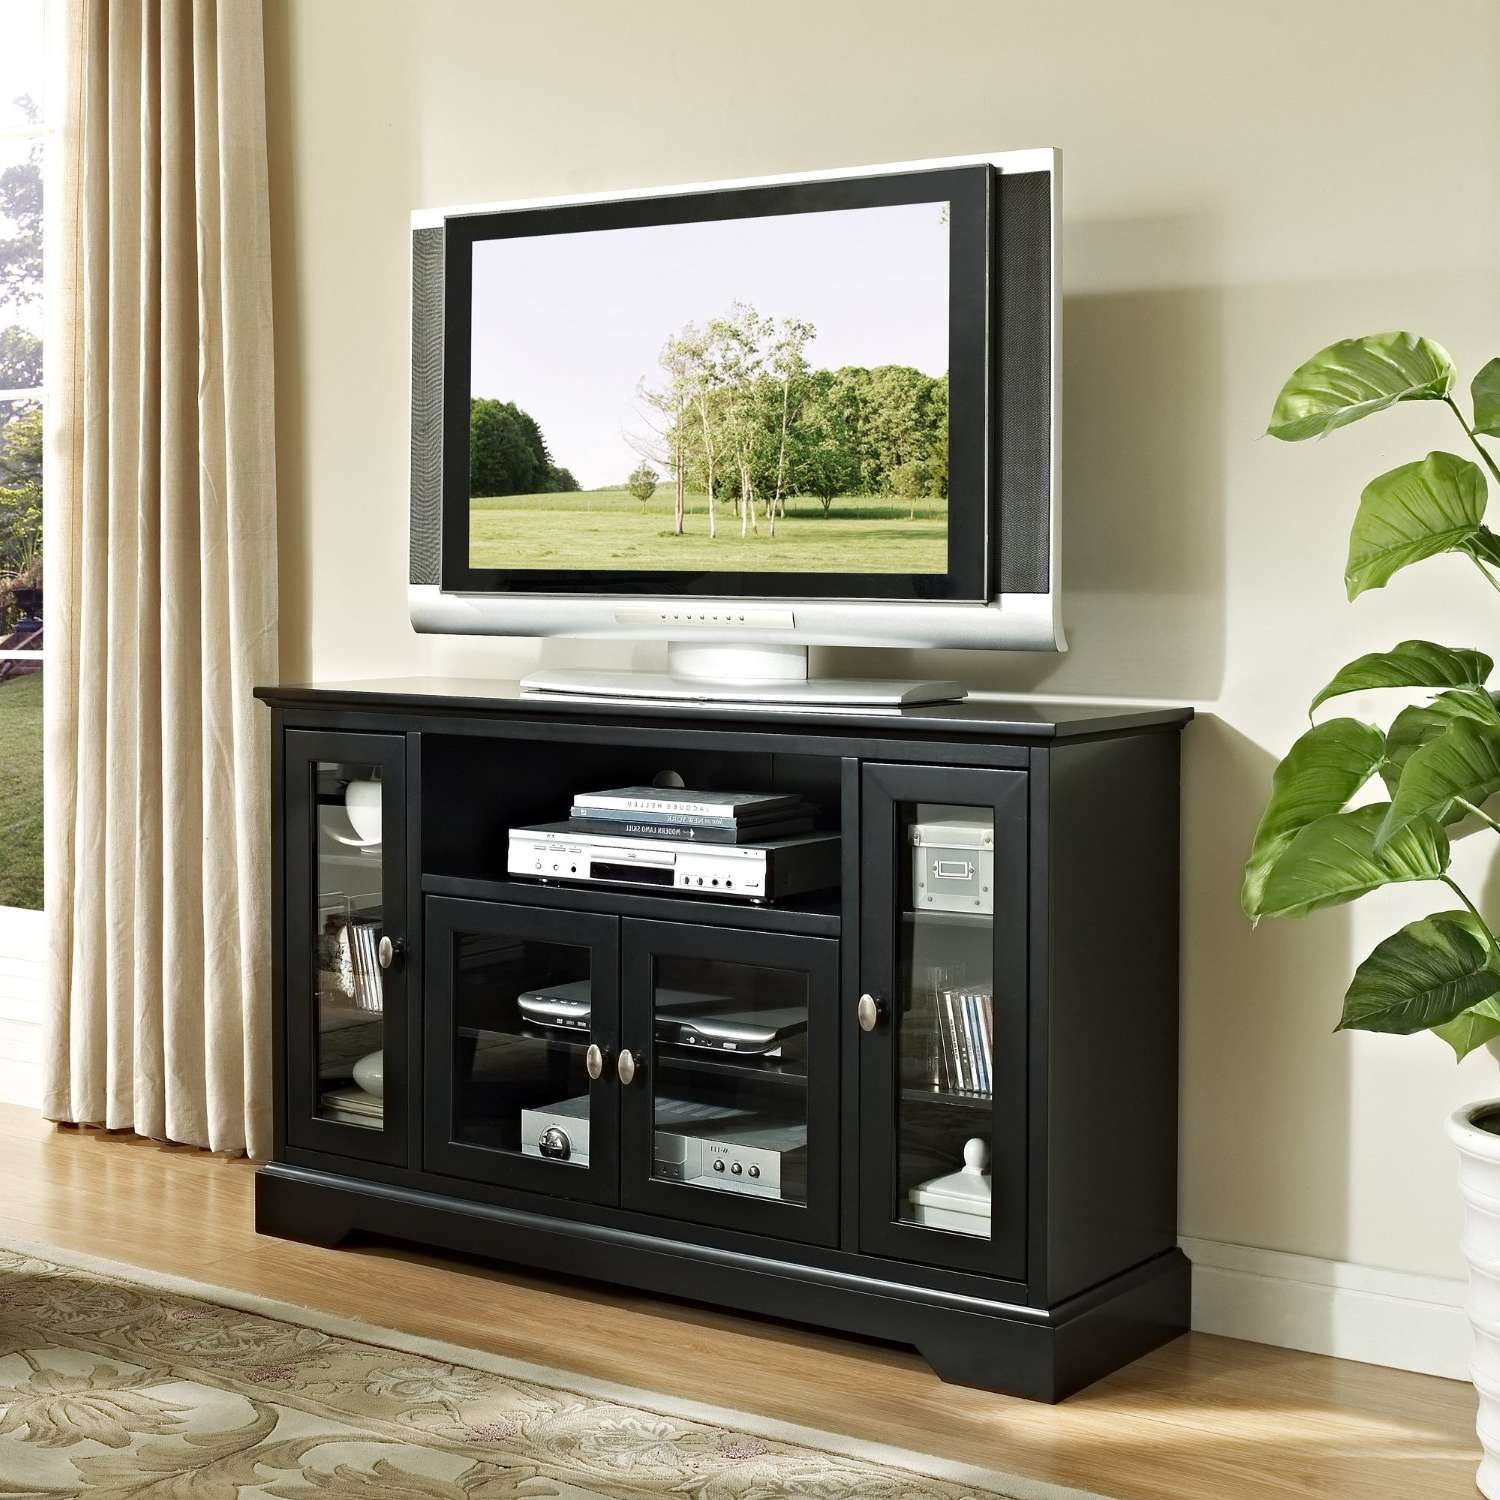 Light Wood Tv Stand Simple Room With Ikea Besta Media Cabinet Of For Wooden Tv Stands With Doors (View 13 of 15)